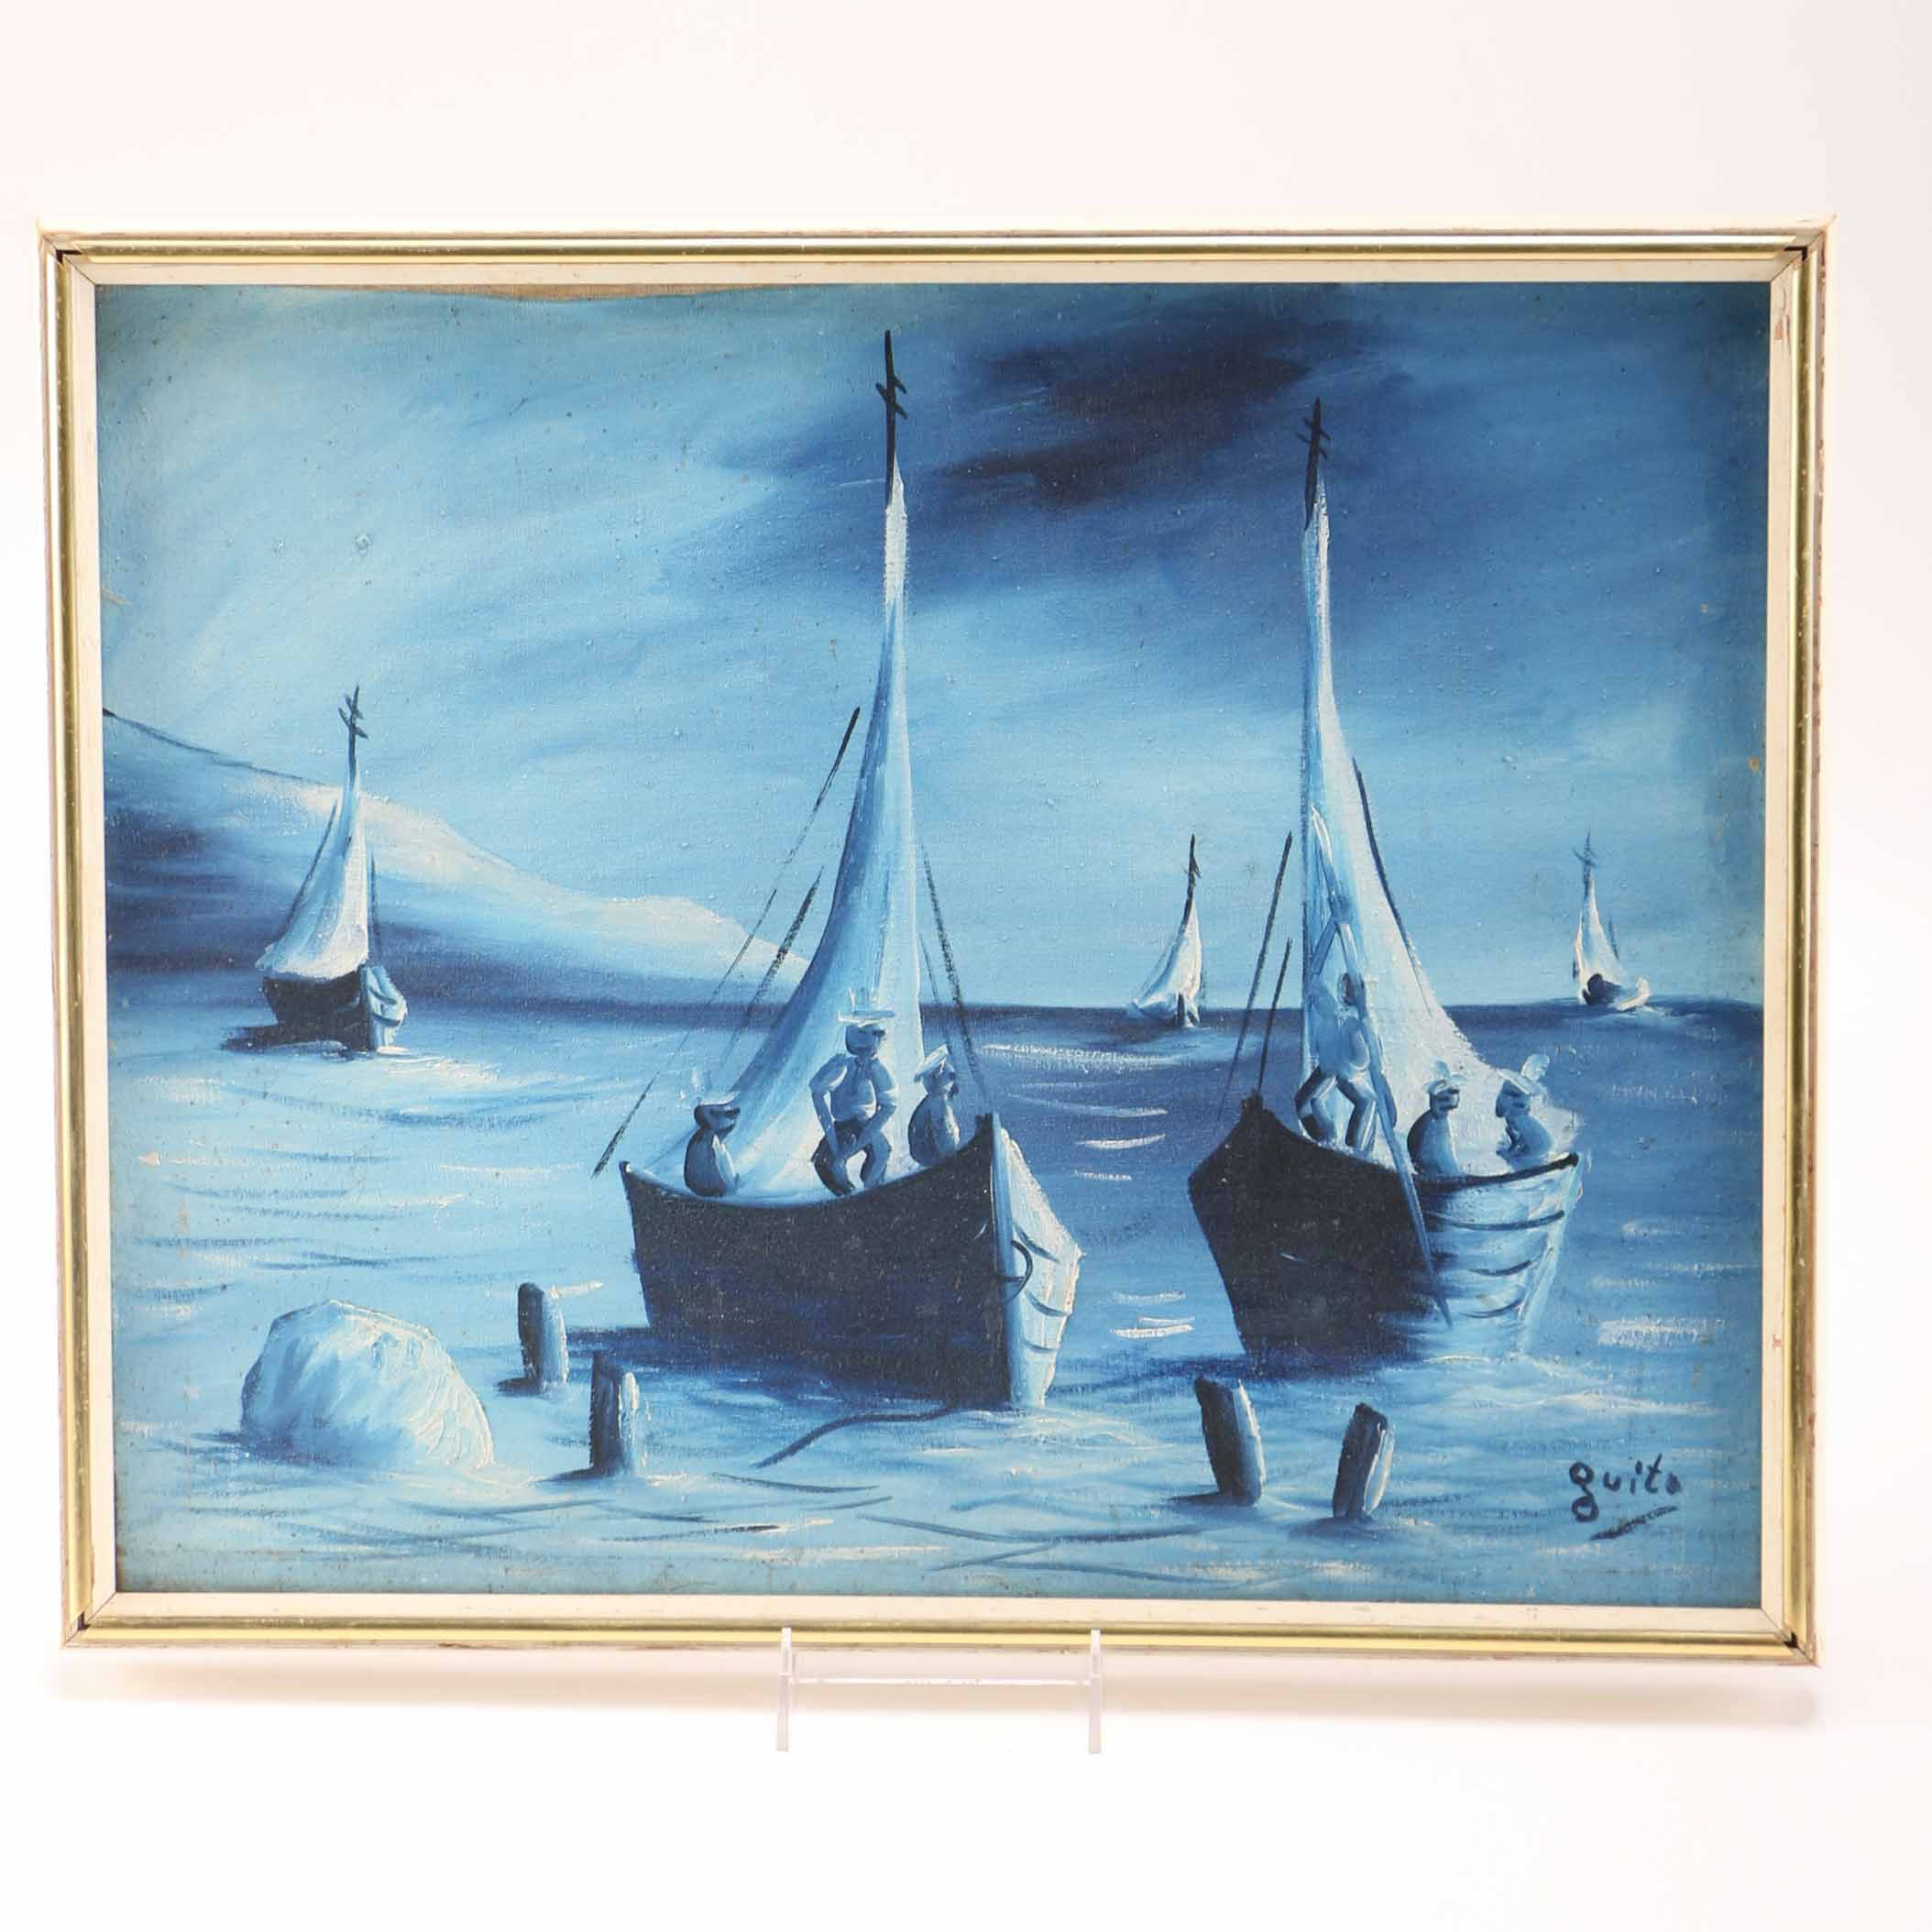 Quito Signed Original Painting of Sailboats